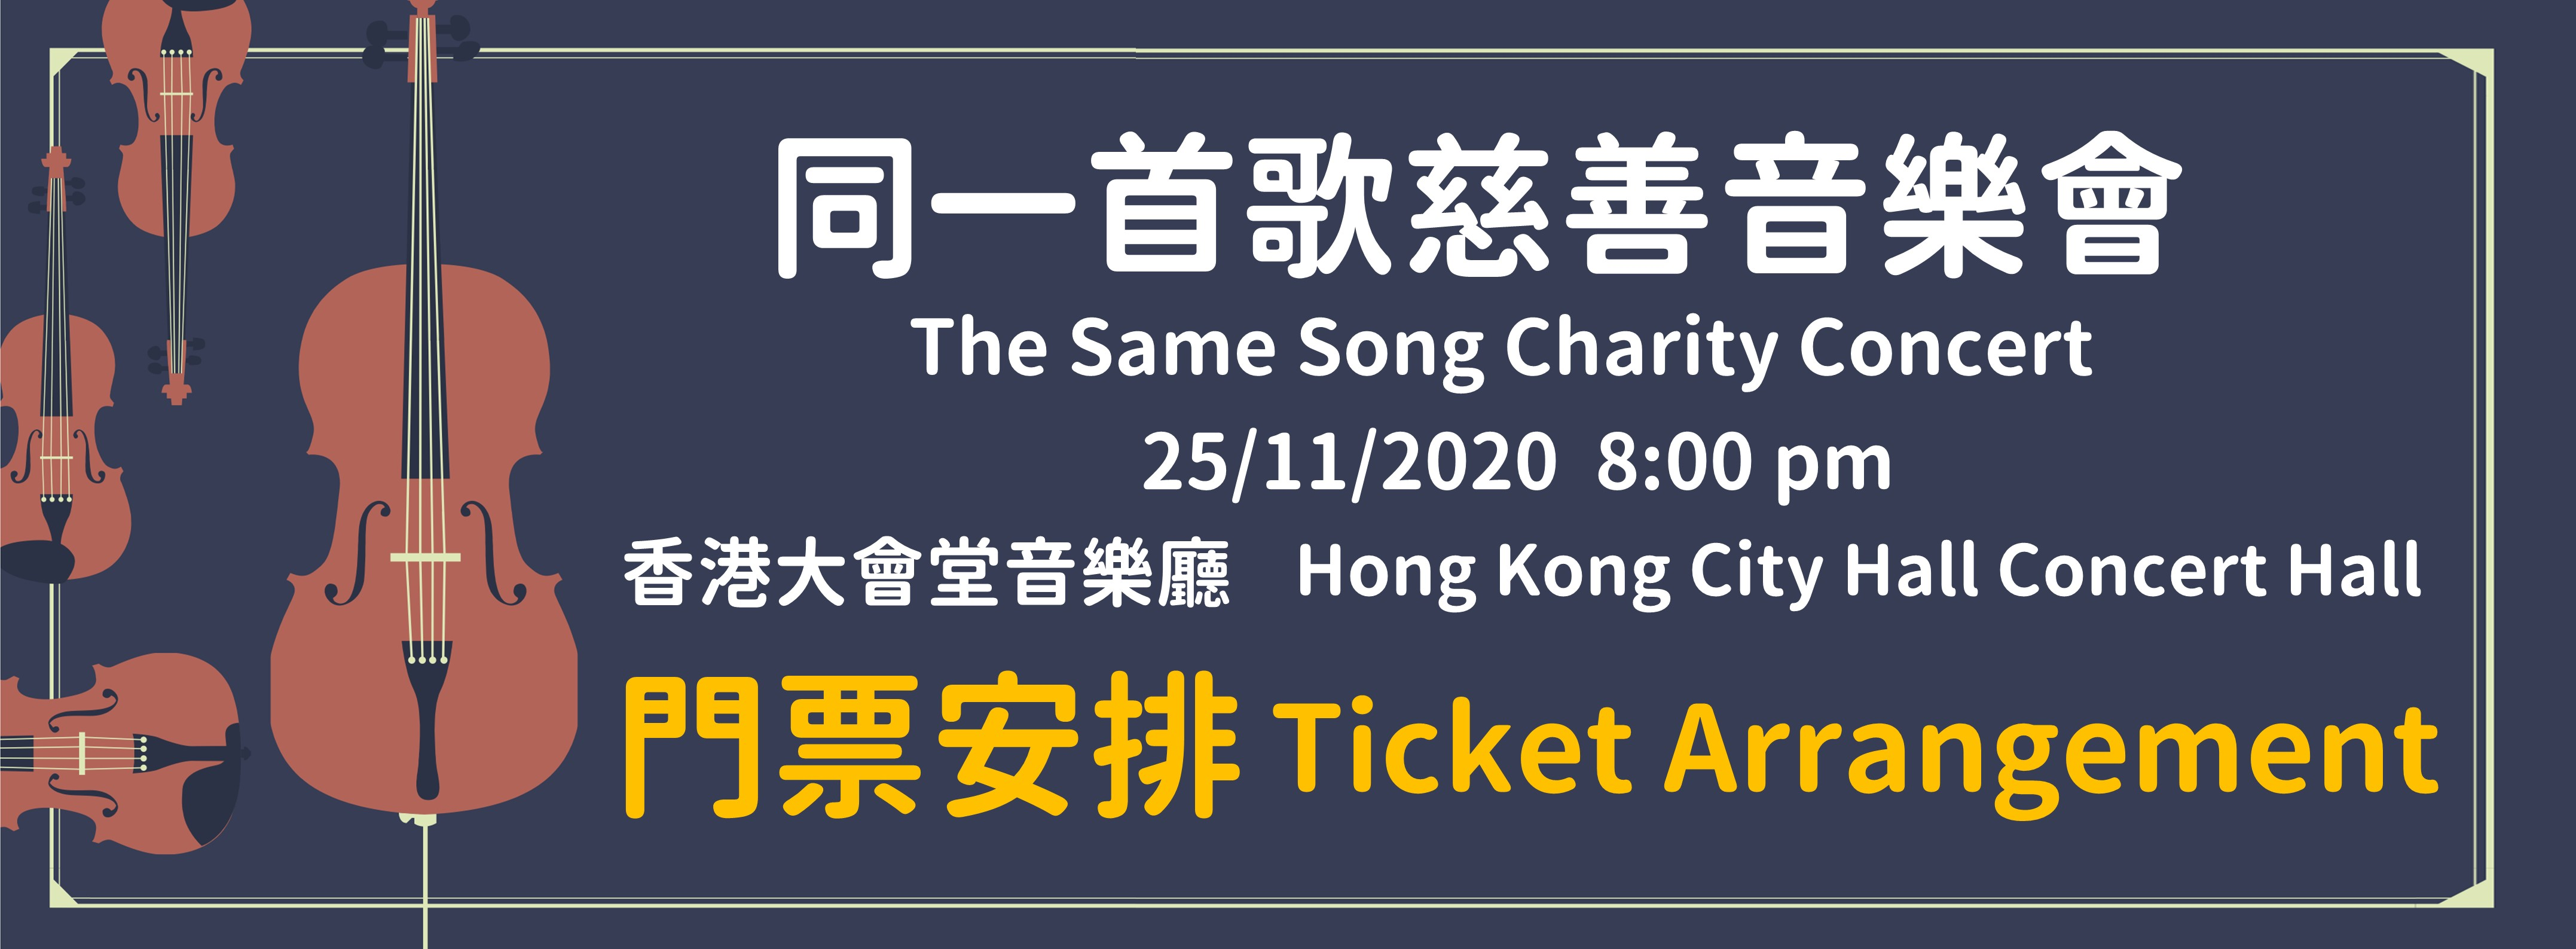 """The Same Song Charity Concert"" Ticket Arrangement"